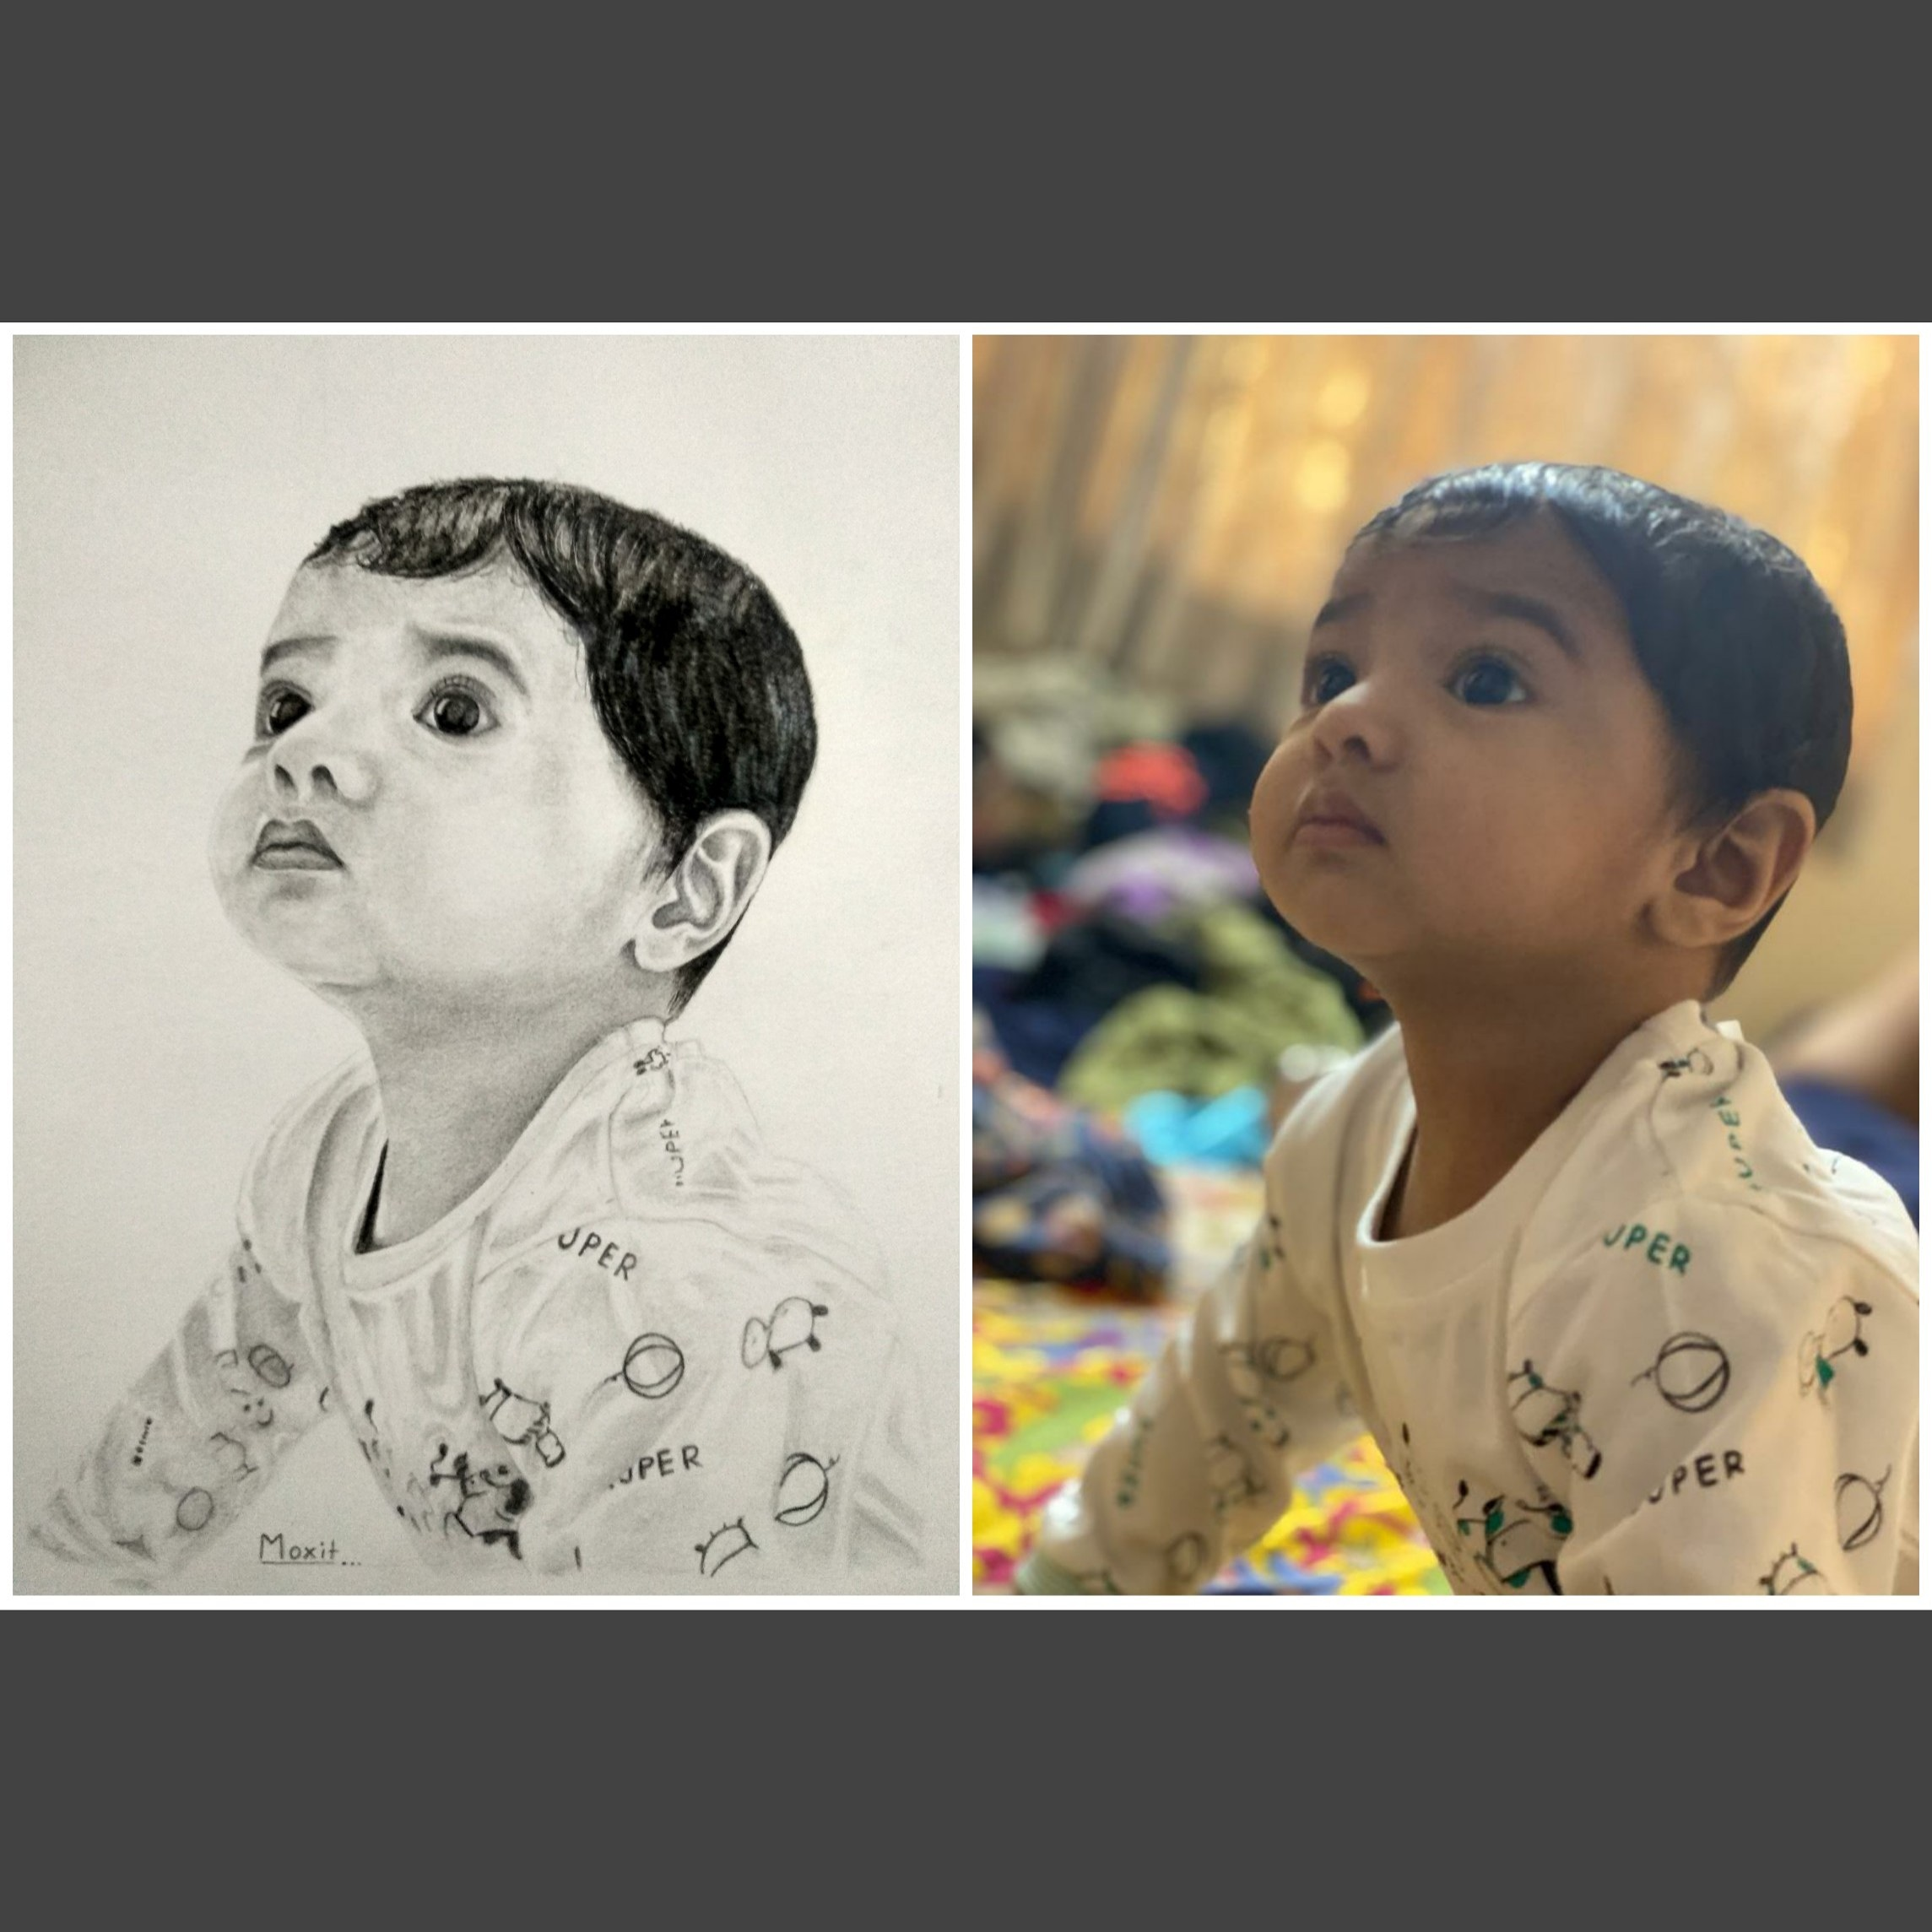 I will draw a realistic pencil sketch portrait from your photo